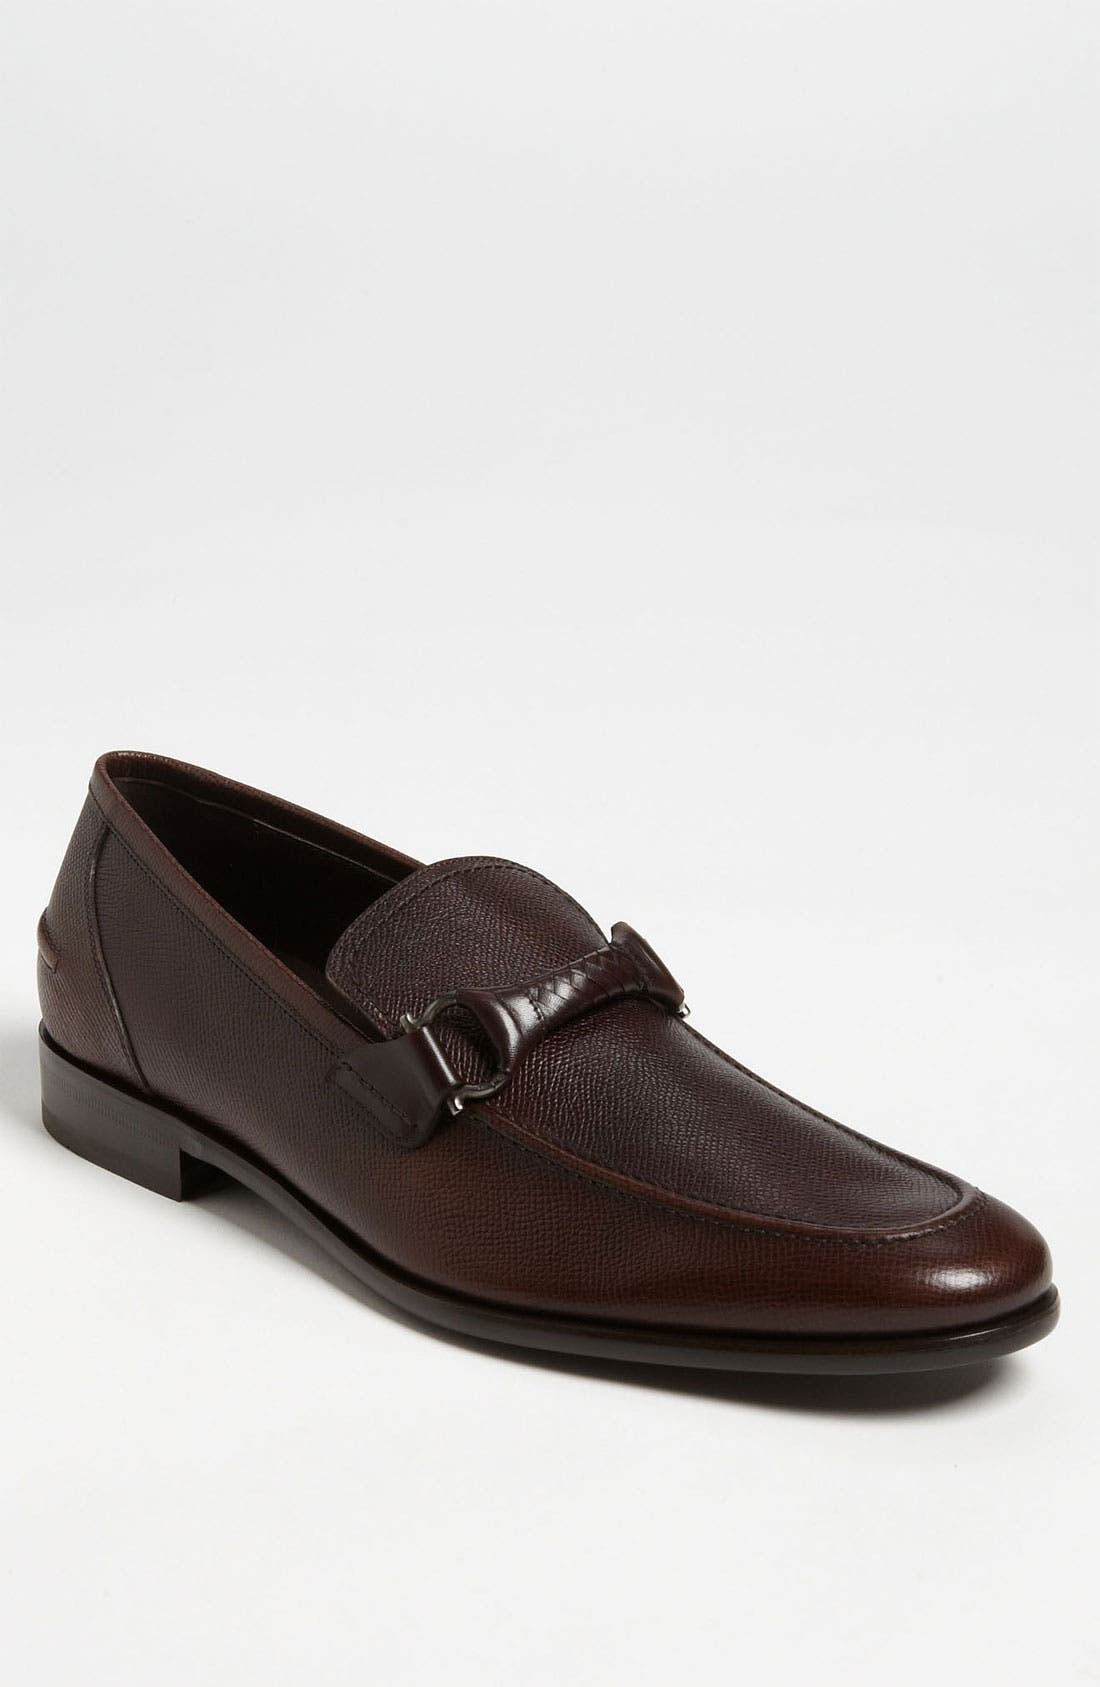 Main Image - Salvatore Ferragamo 'Twist' Bit Loafer